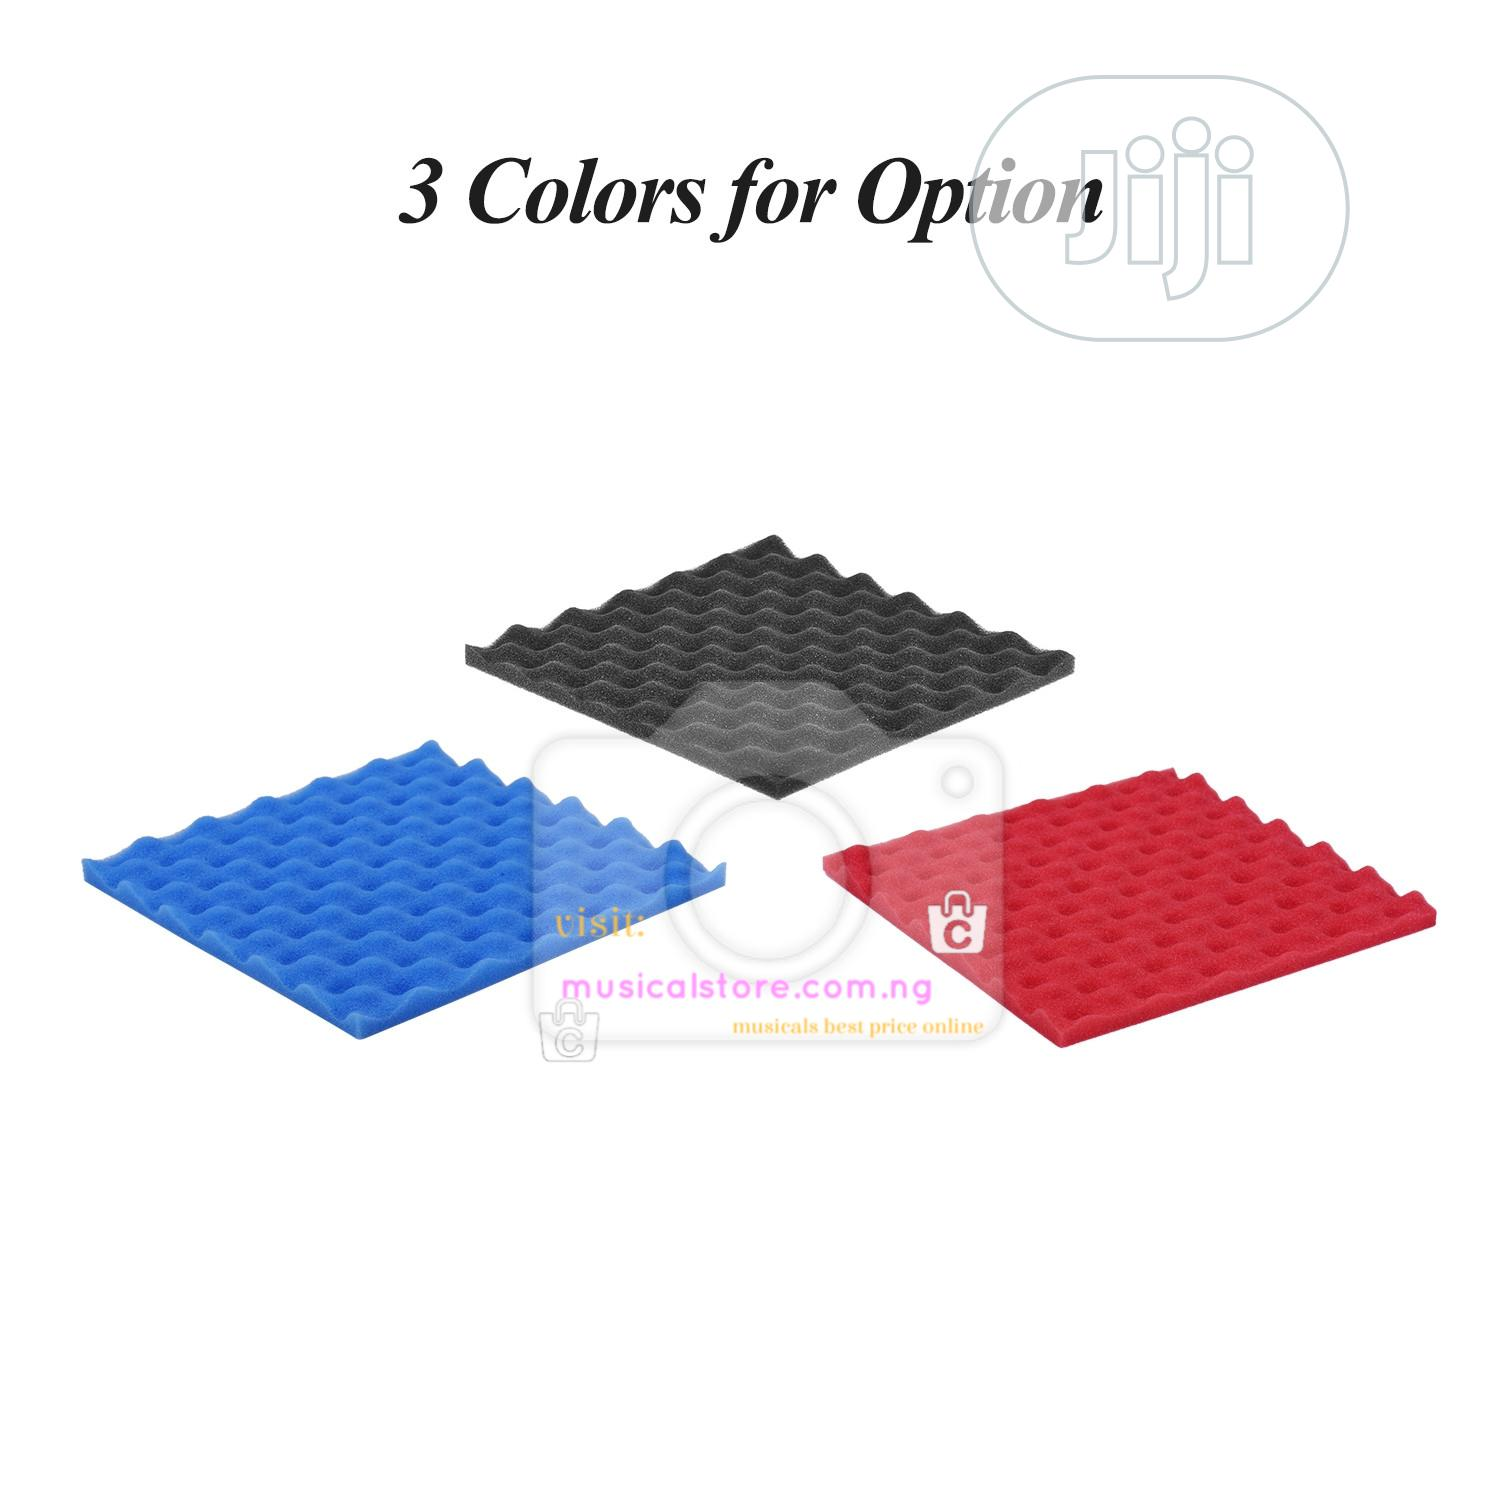 Acoustic Foam. Soundproofing 6pcs | Audio & Music Equipment for sale in Ojo, Lagos State, Nigeria